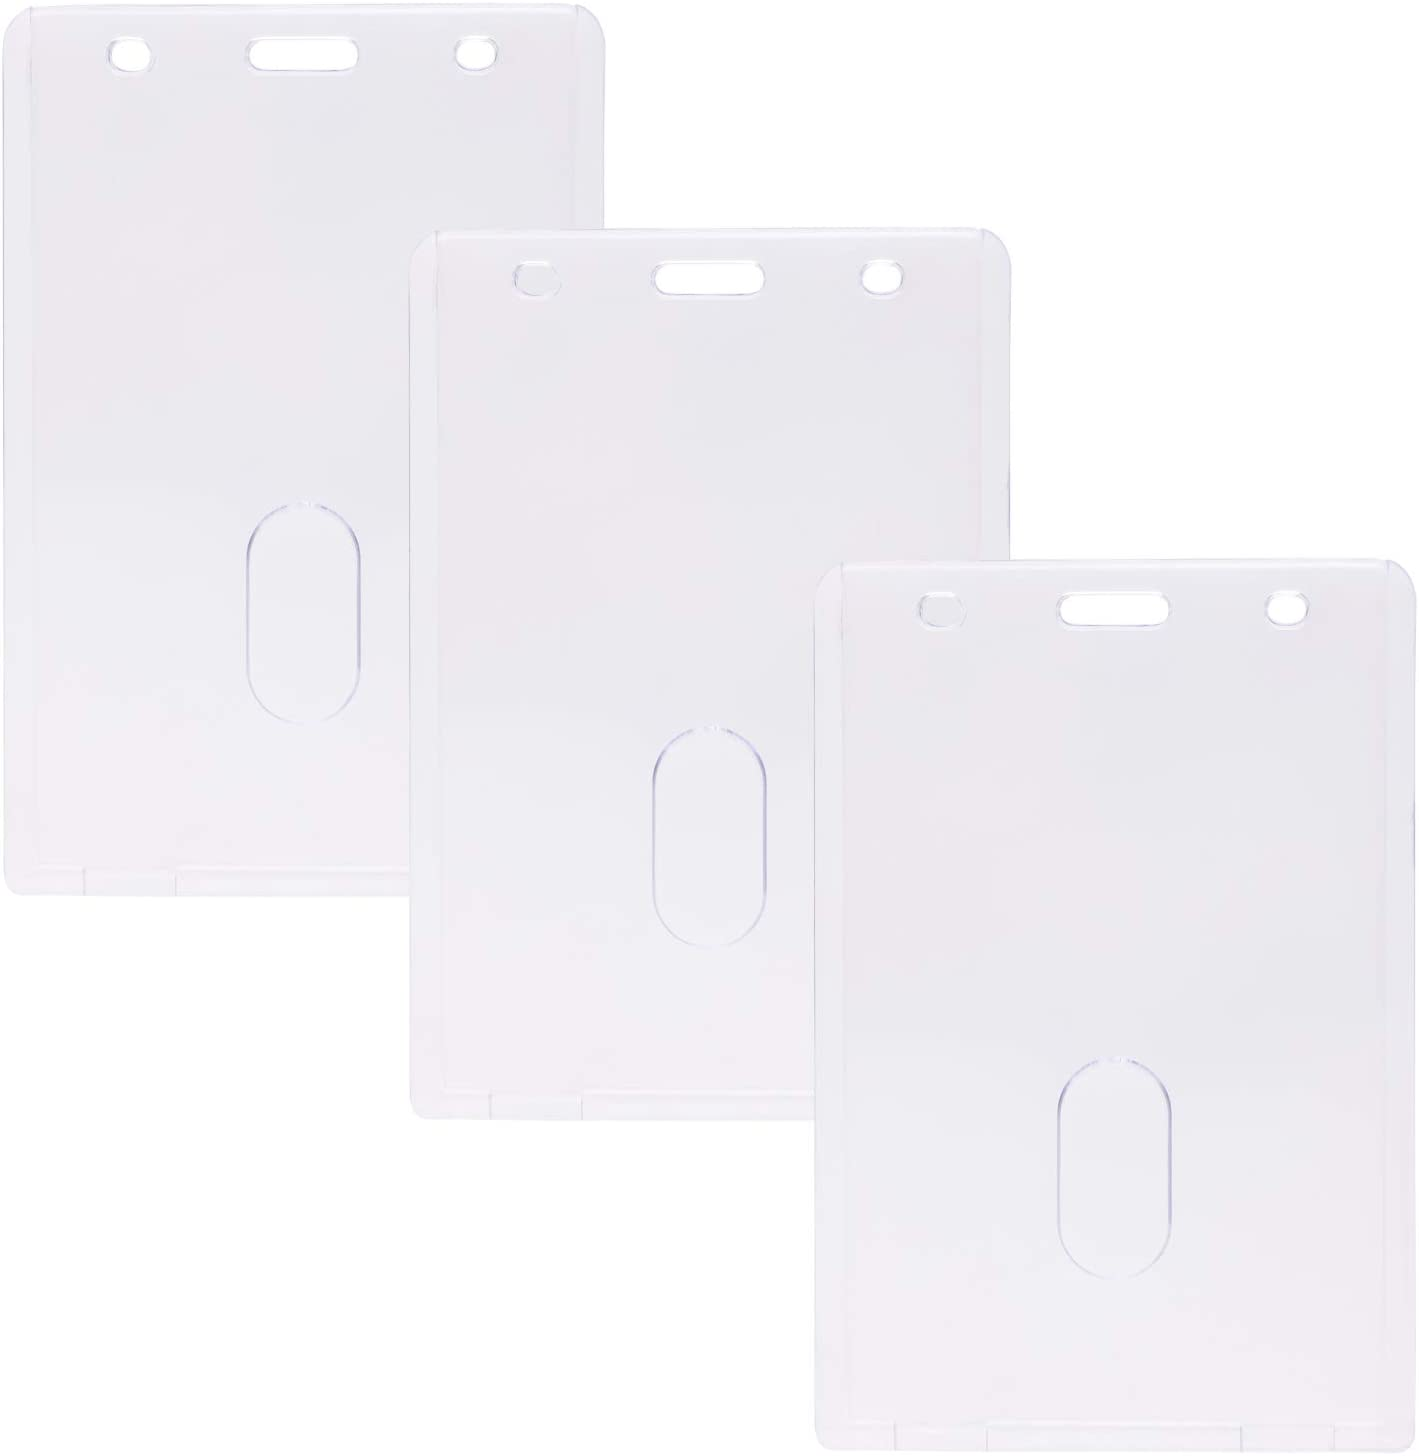 ONLYKXY Heavy Duty Hard Plastic Large ID Badge Holder Work Card Clear Holder (Vertical Style 74 x 105 mm)